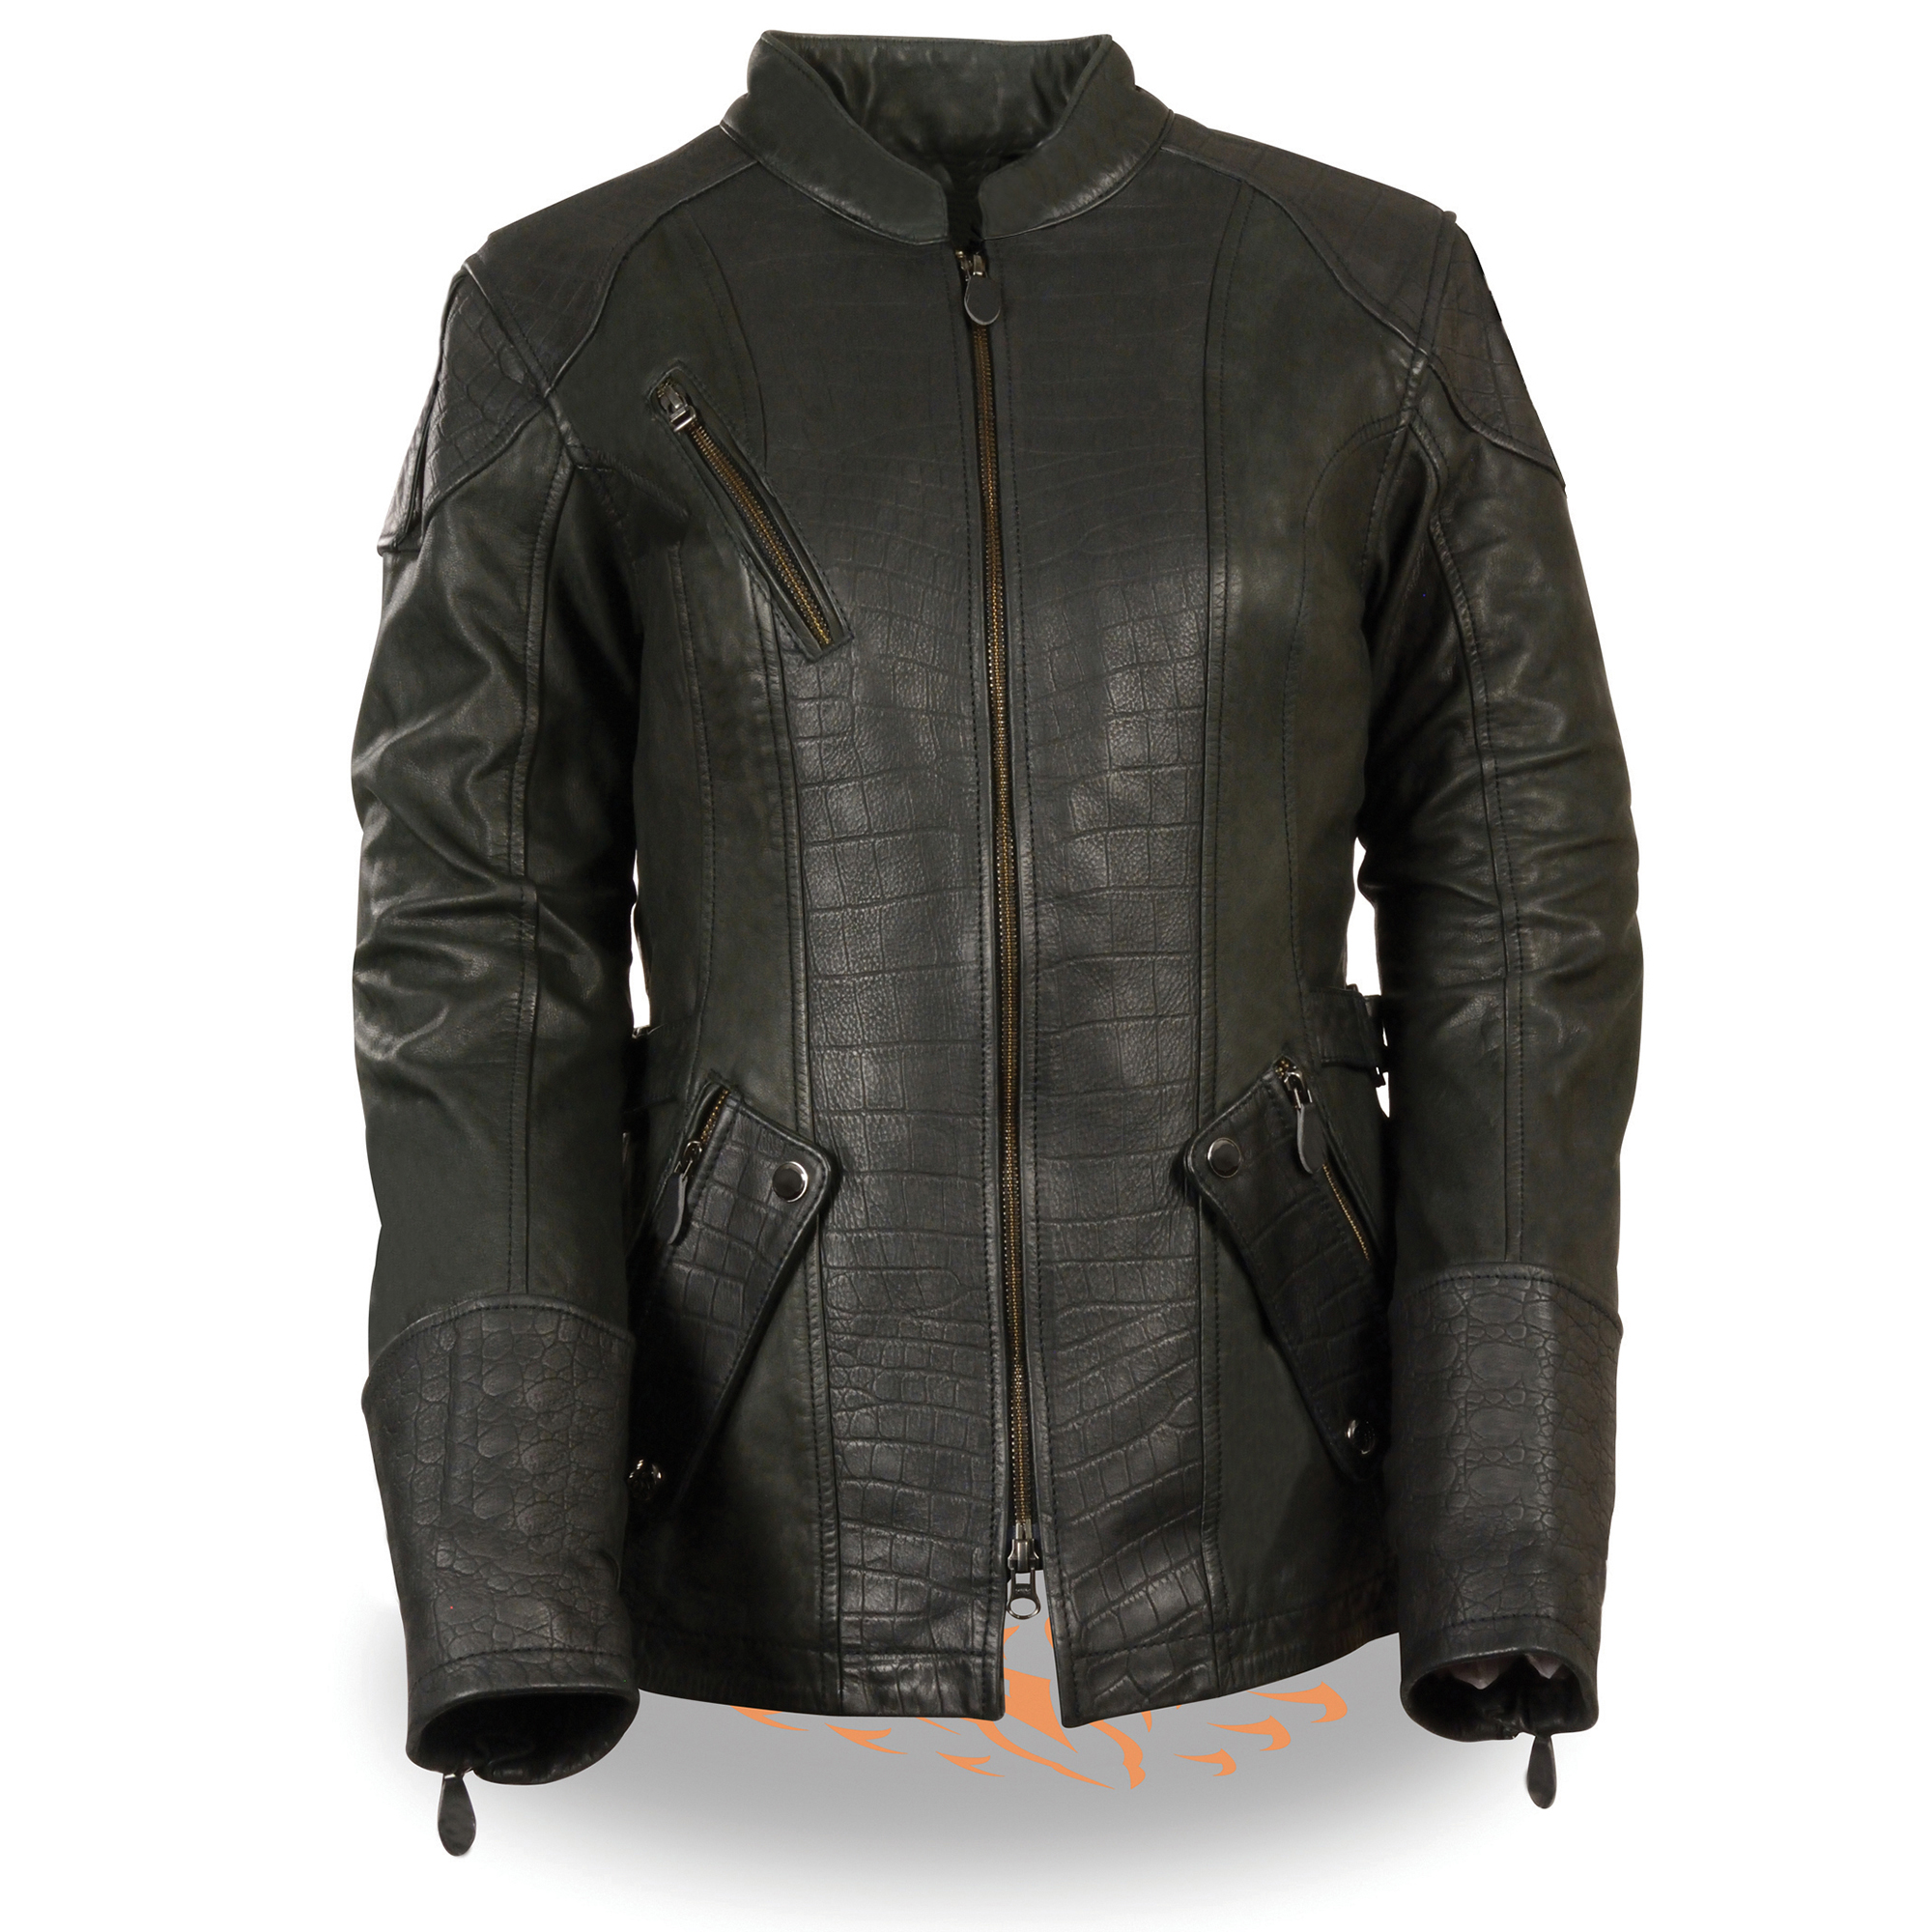 0fce86db07924 MLL2560-BLACK - Ladies ¾ Length Stand Up Collar Embossed Print Leather  Jacket